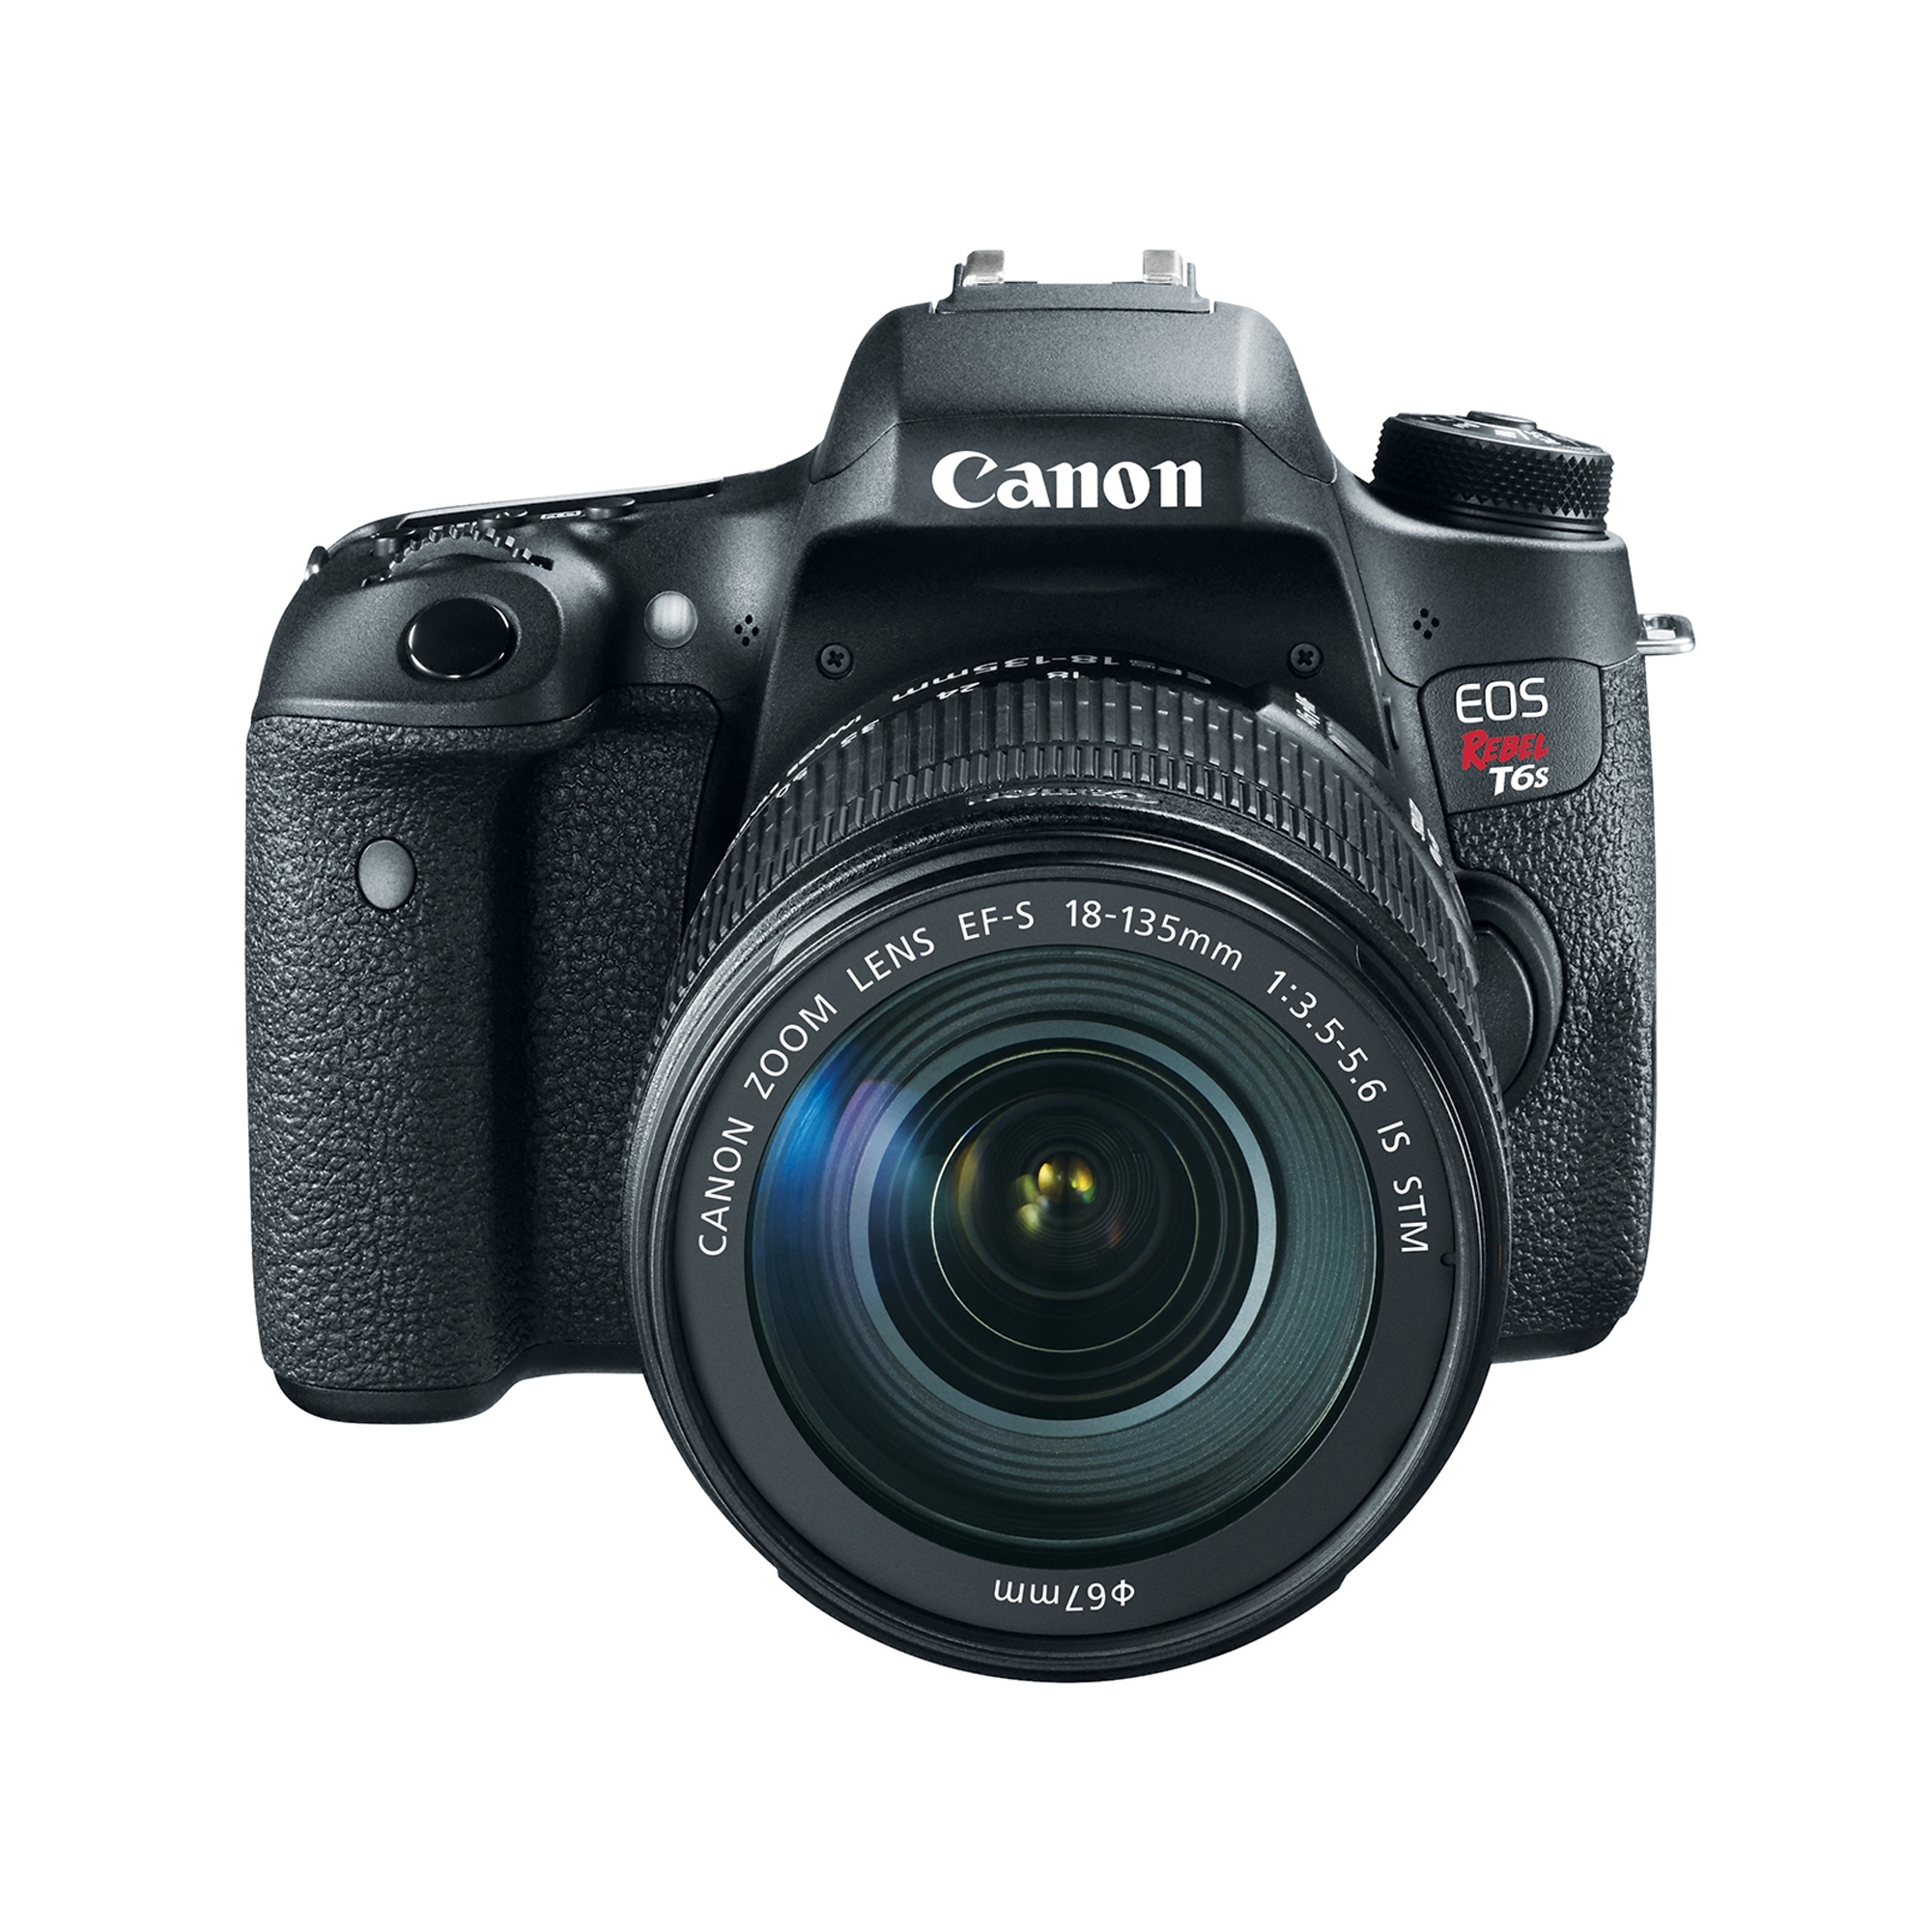 Canon EOS Rebel T6s 24.2 Megapixel Digital SLR with EF-S 18-135mm IS STM Lens Kit